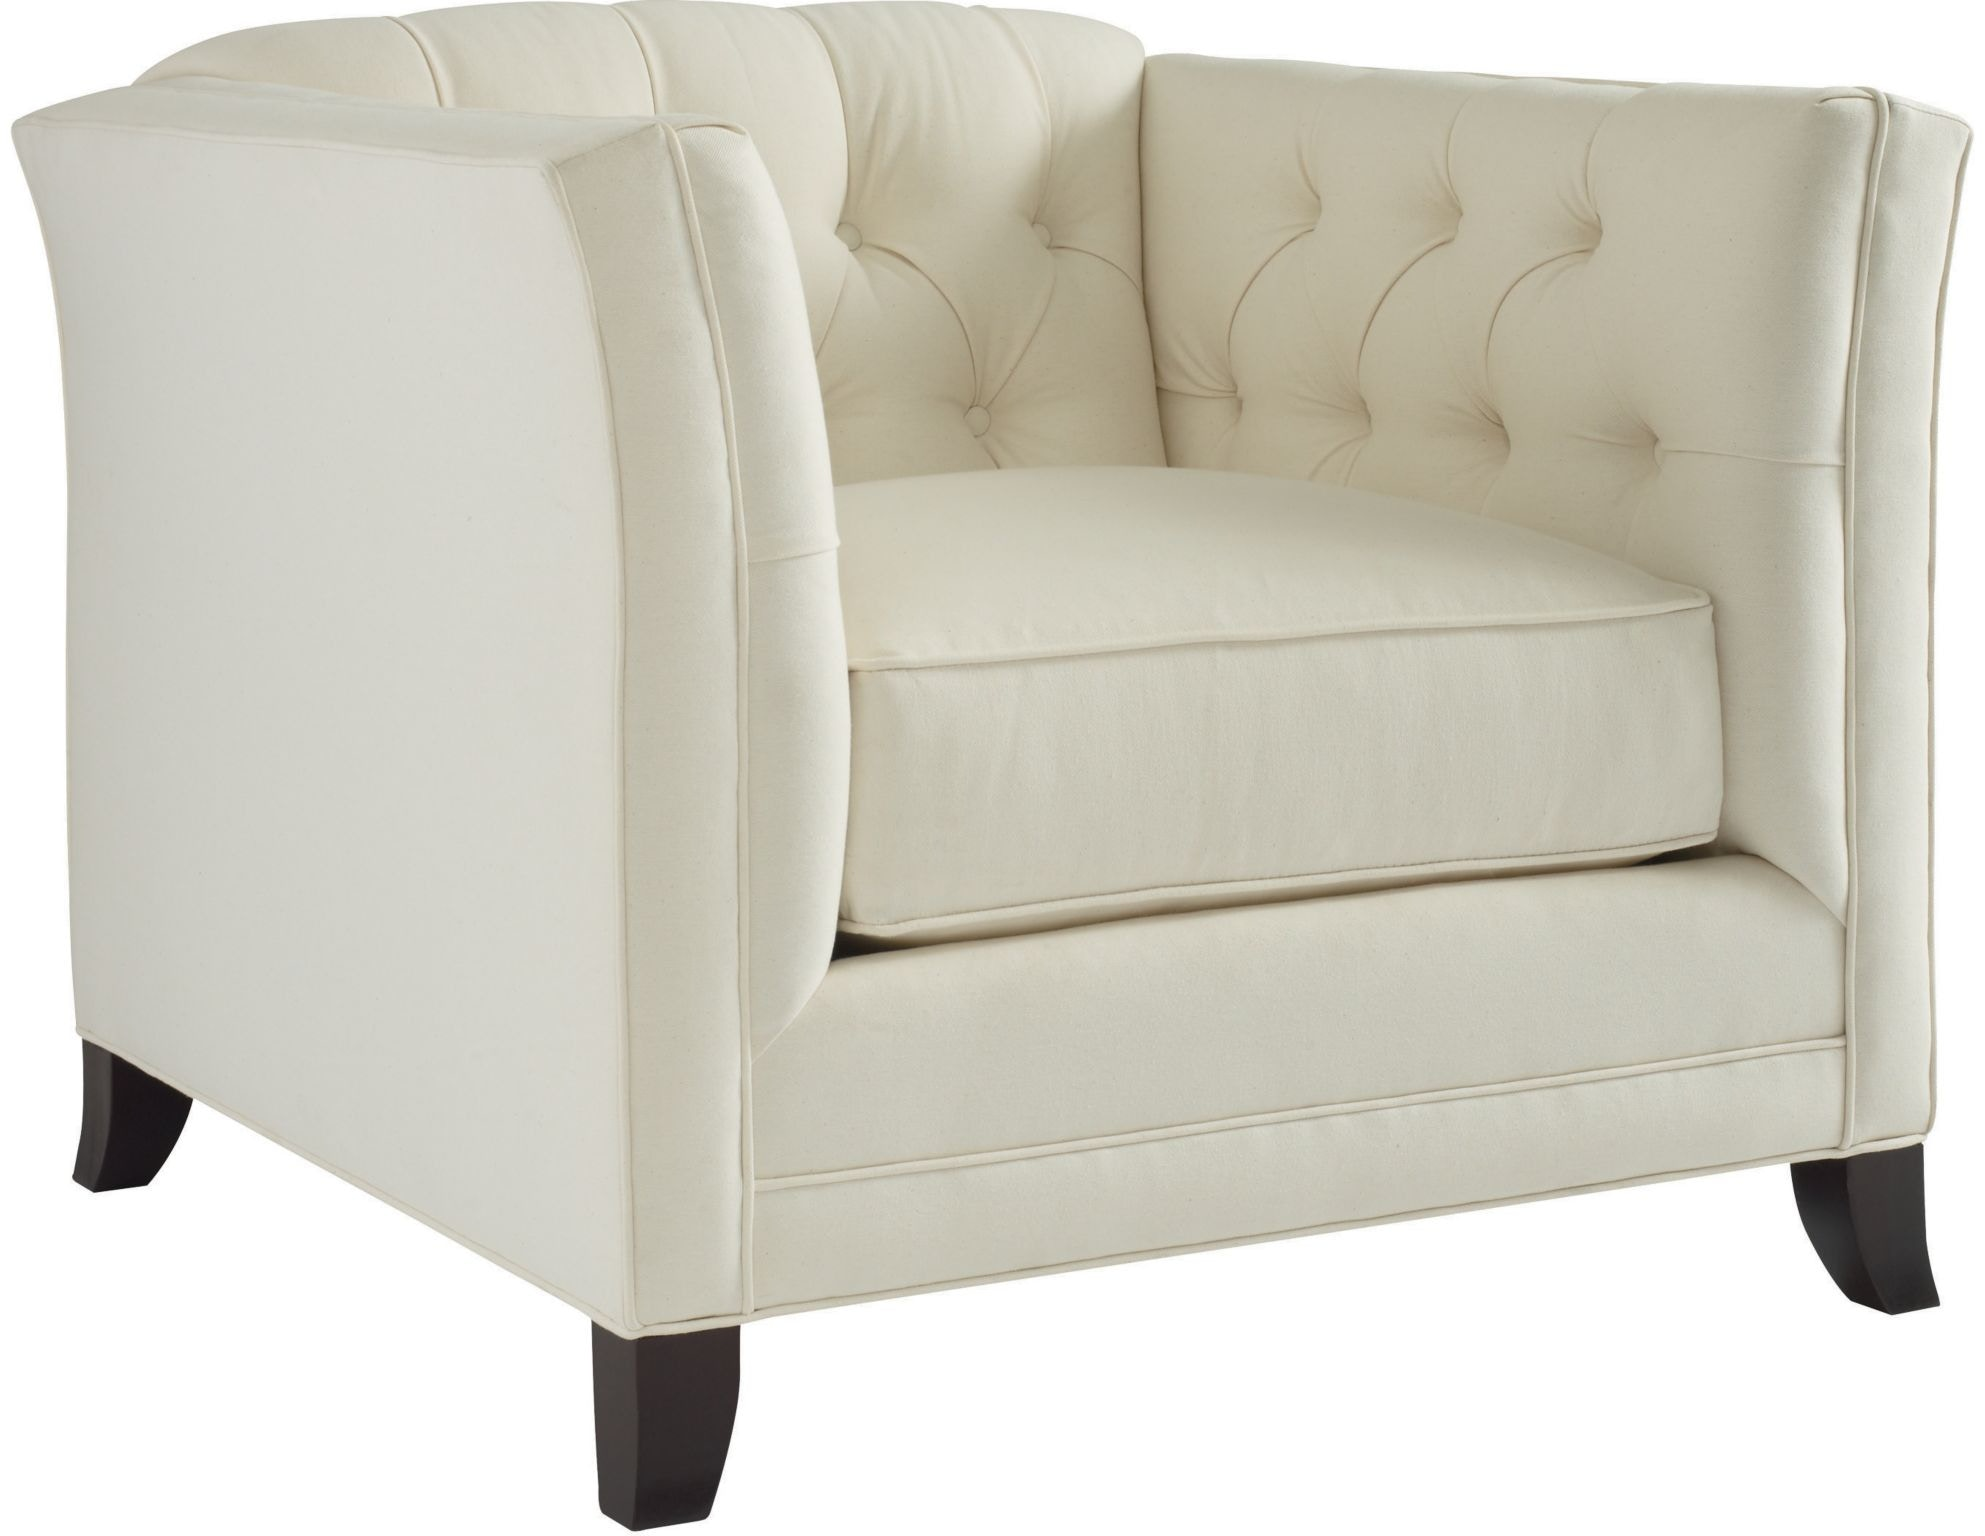 Thomasville Living Room Surrey Chair 2235 15